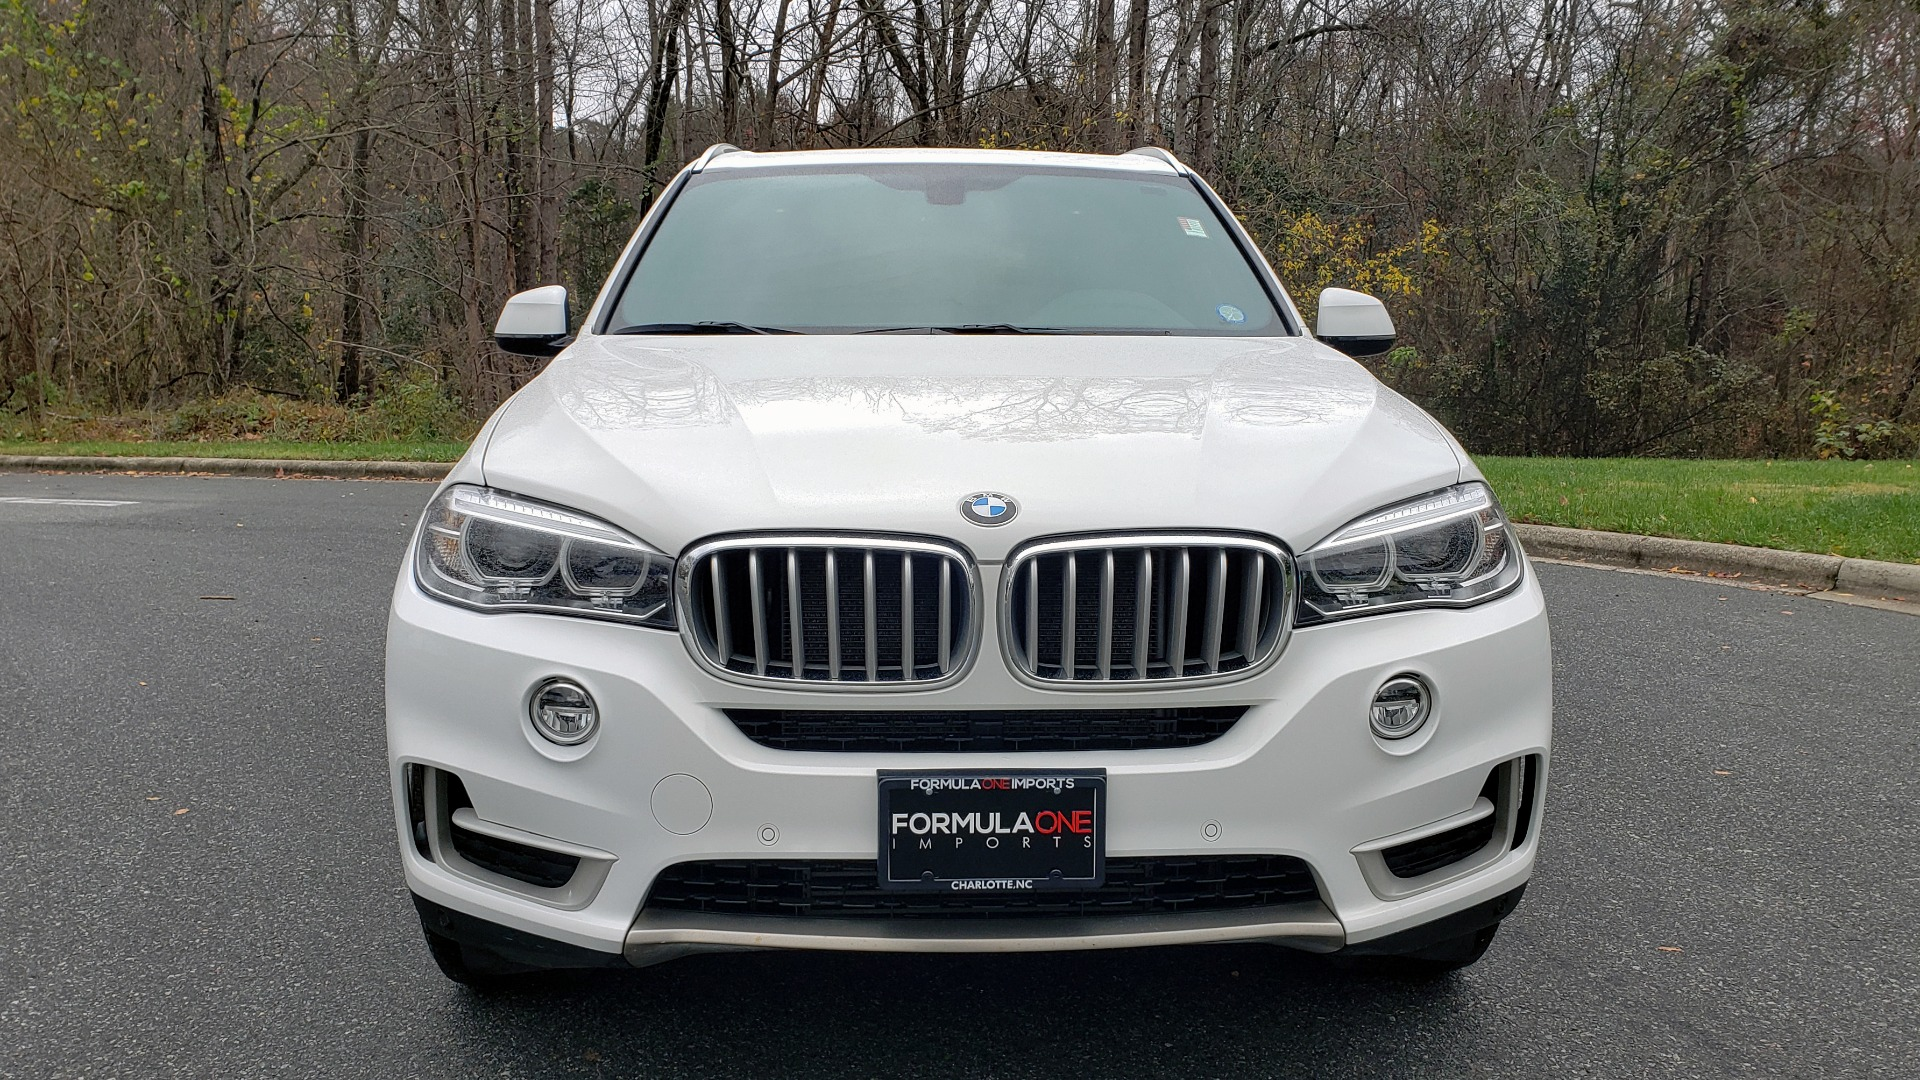 Used 2018 BMW X5 XDRIVE35I / AWD / NAV / HTD STS / SUNROOF / REARVIEW for sale Sold at Formula Imports in Charlotte NC 28227 19